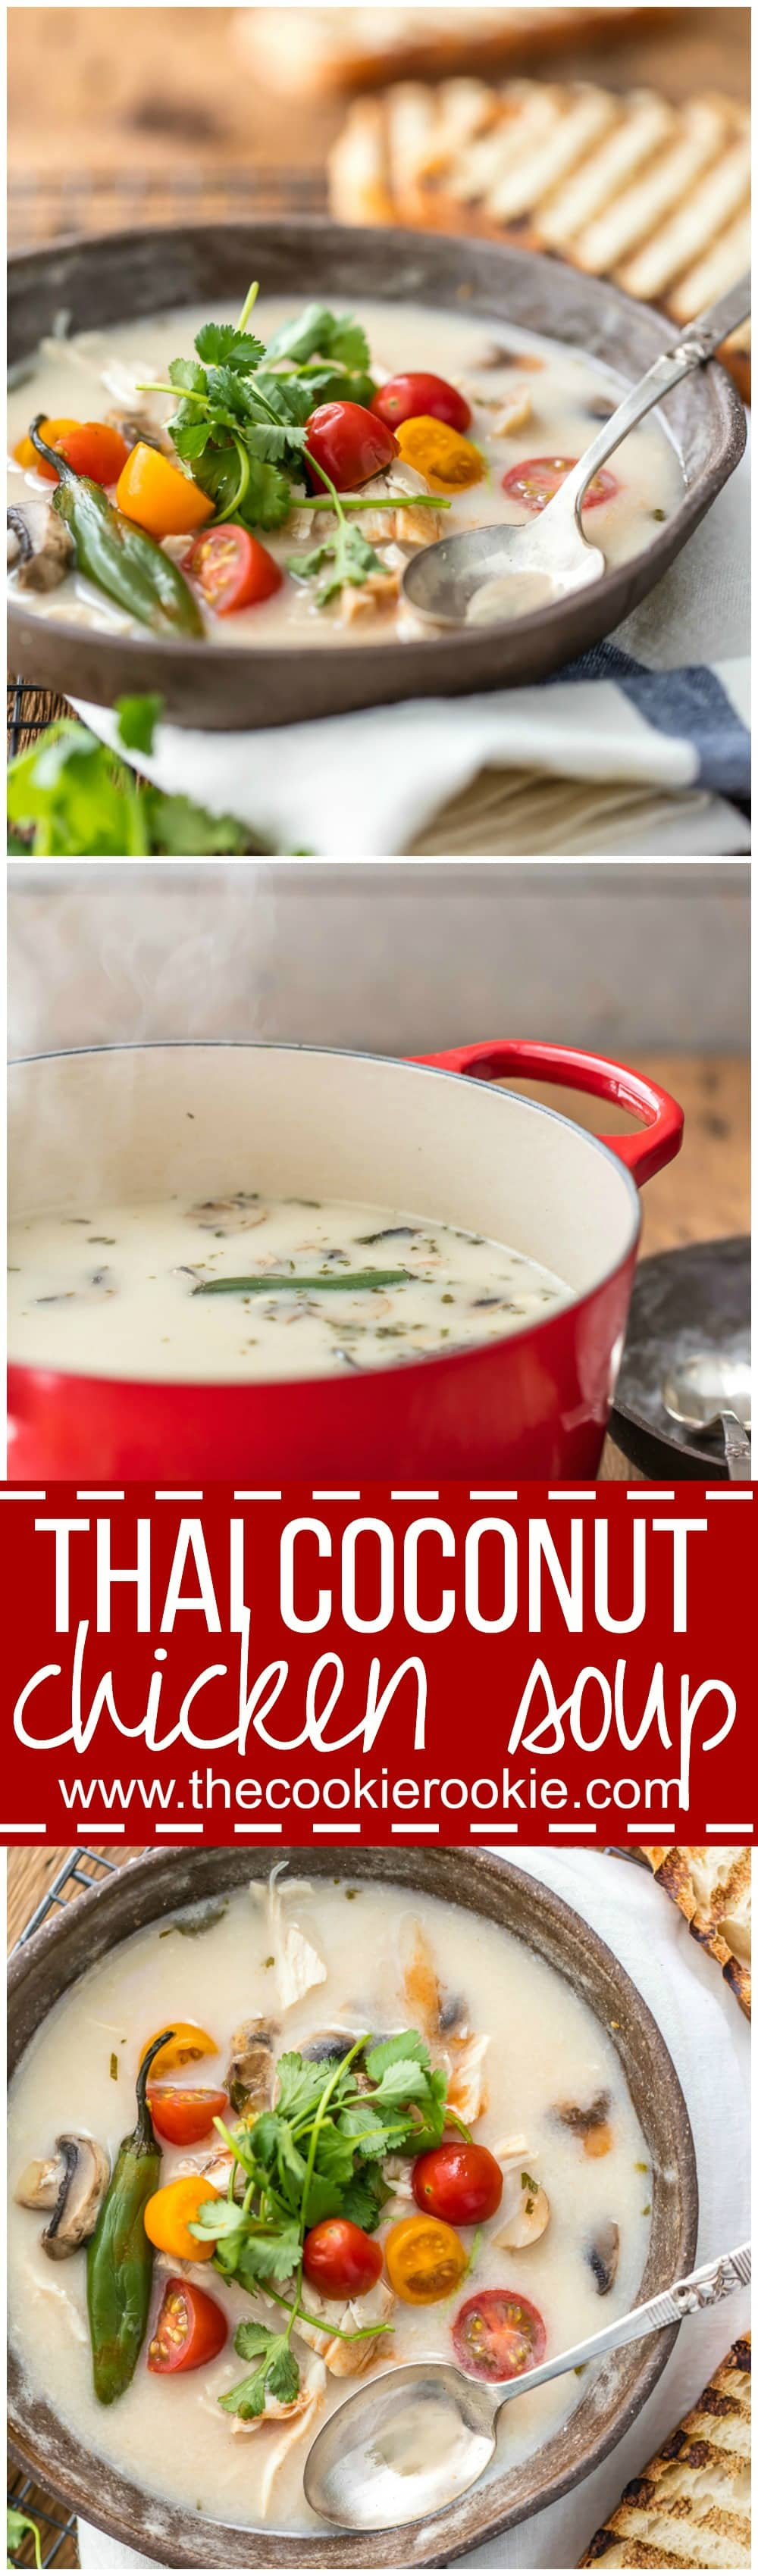 Thai Coconut Chicken Soup Is Healthy Easy And So Delicious Loaded With Cilantro